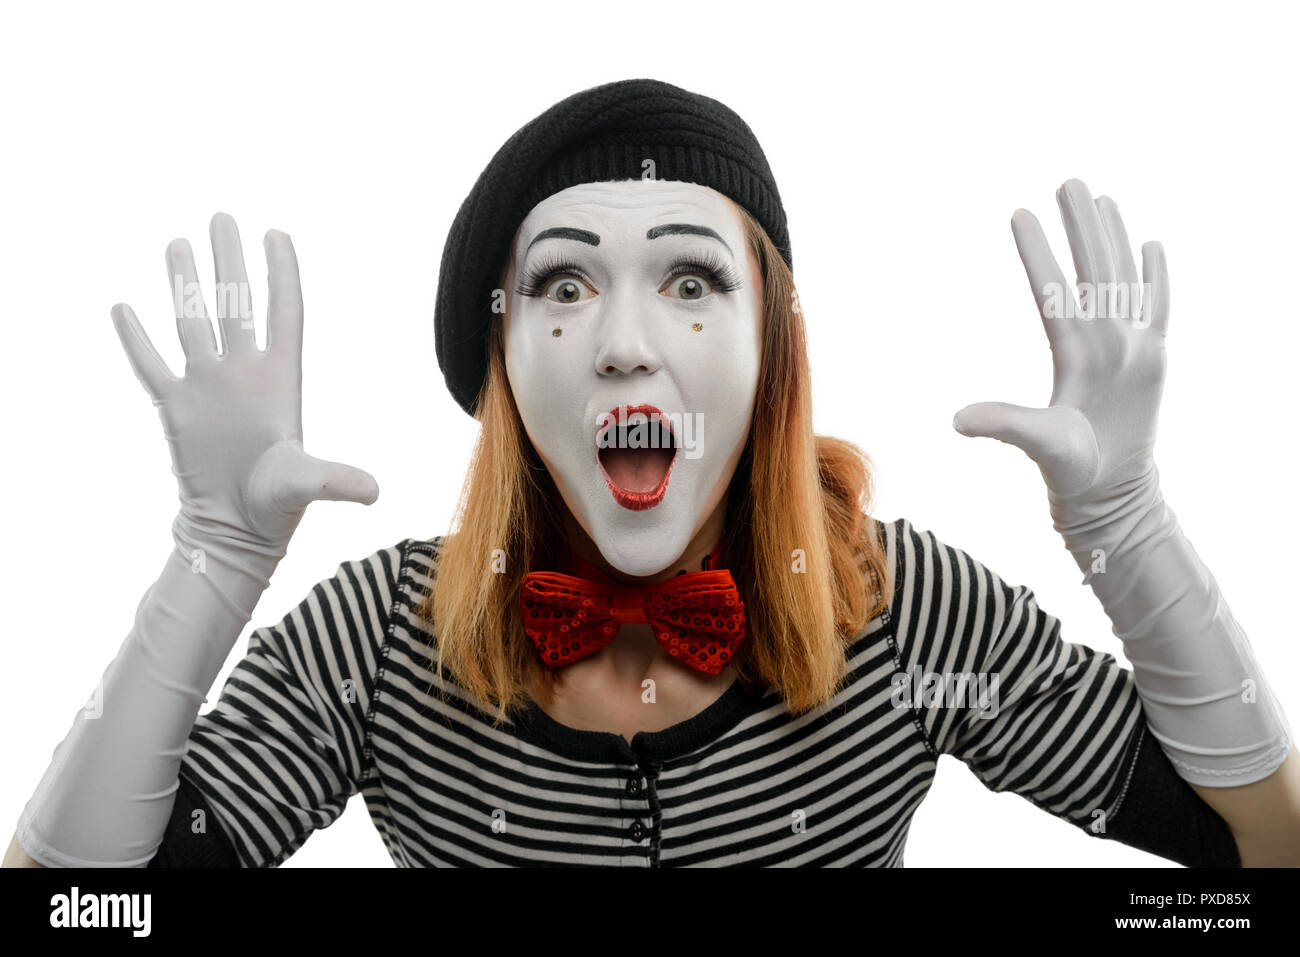 Female mime on white background - Stock Image